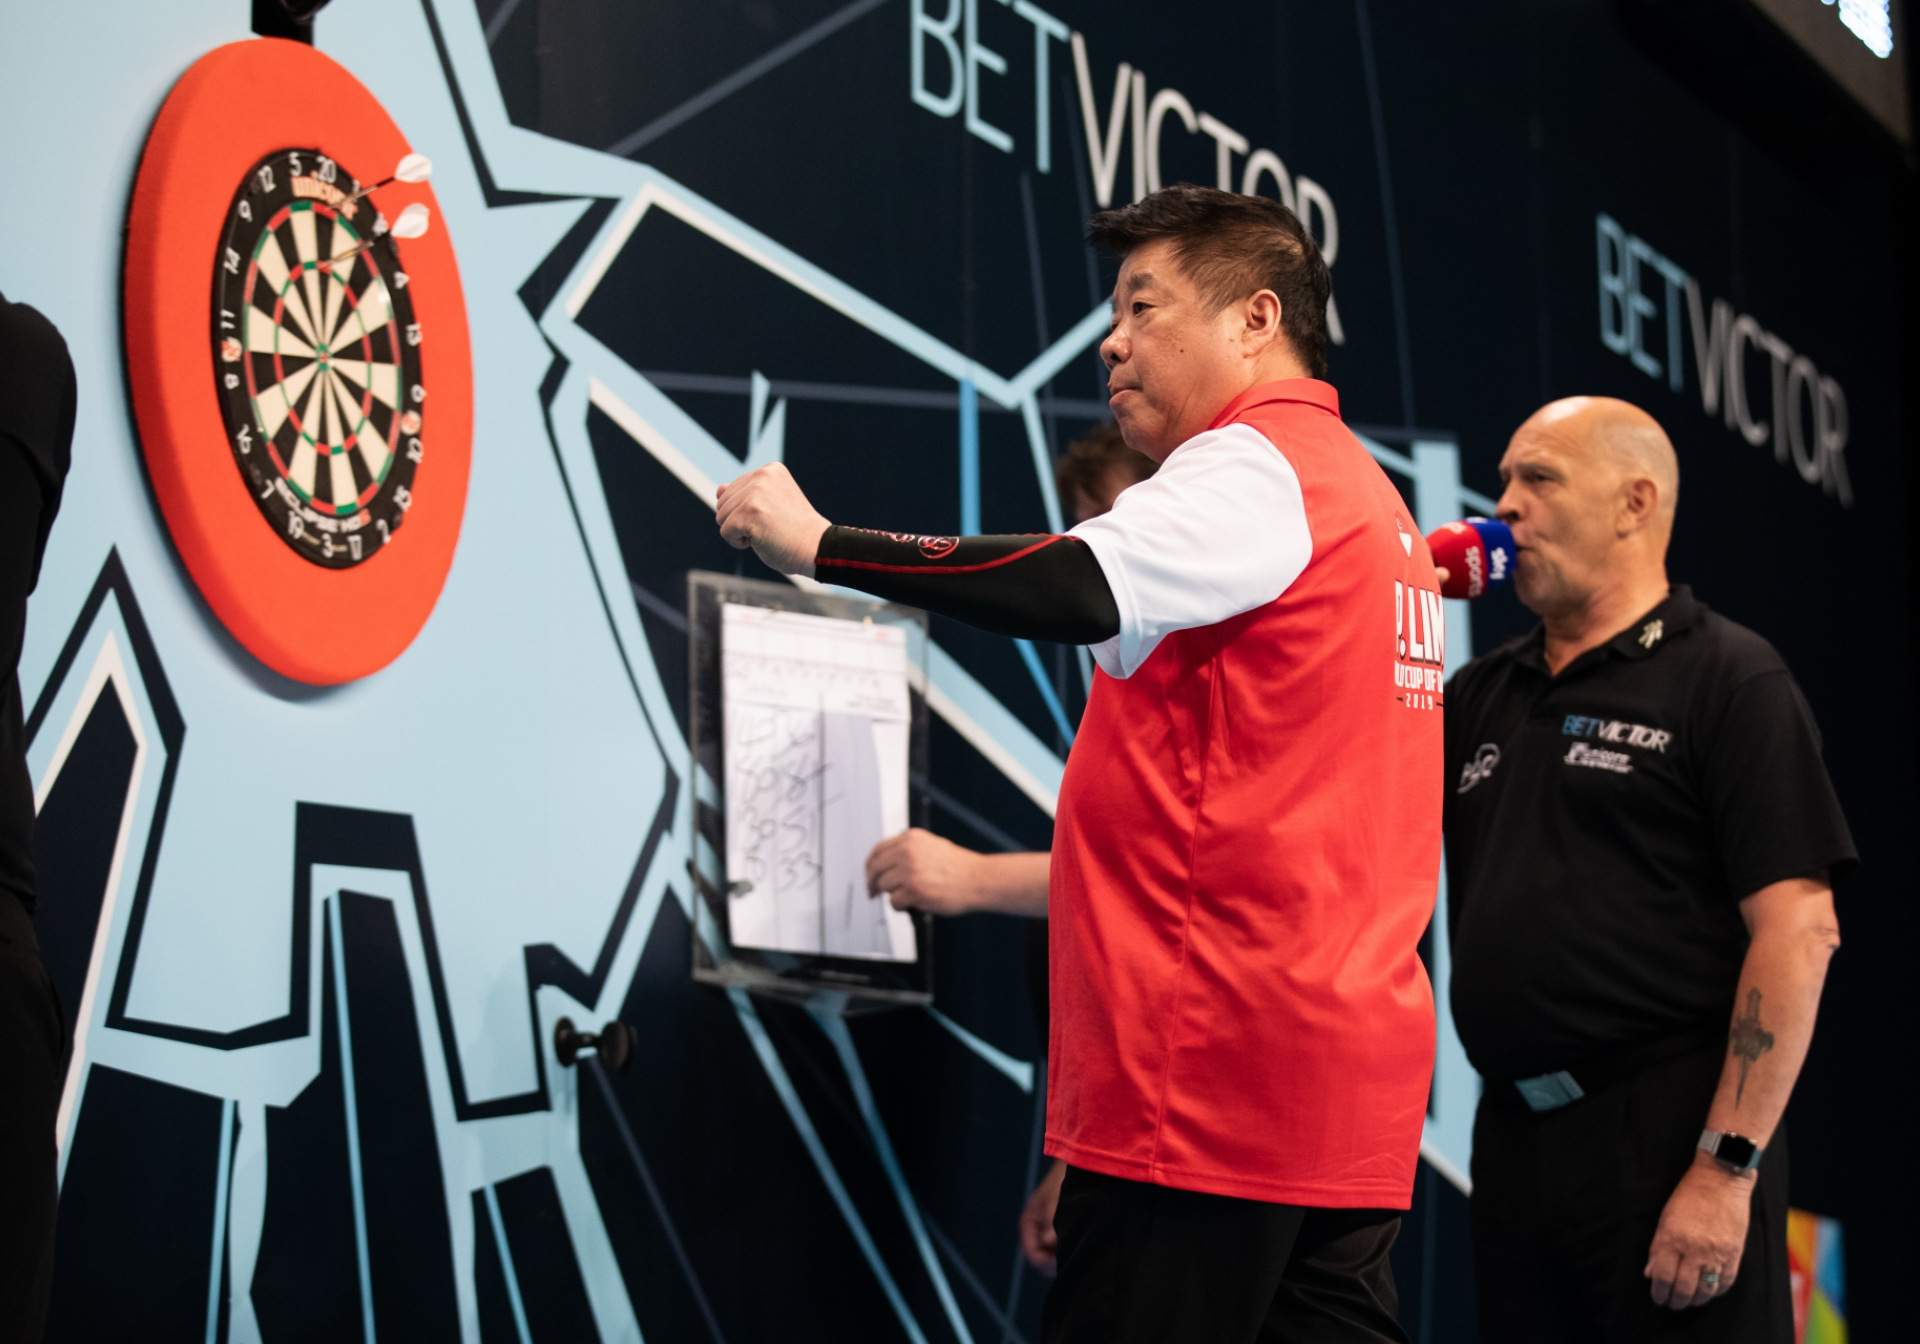 Singapore's Paul Lim - BetVictor World Cup of Darts (Stefan Strassenberg)